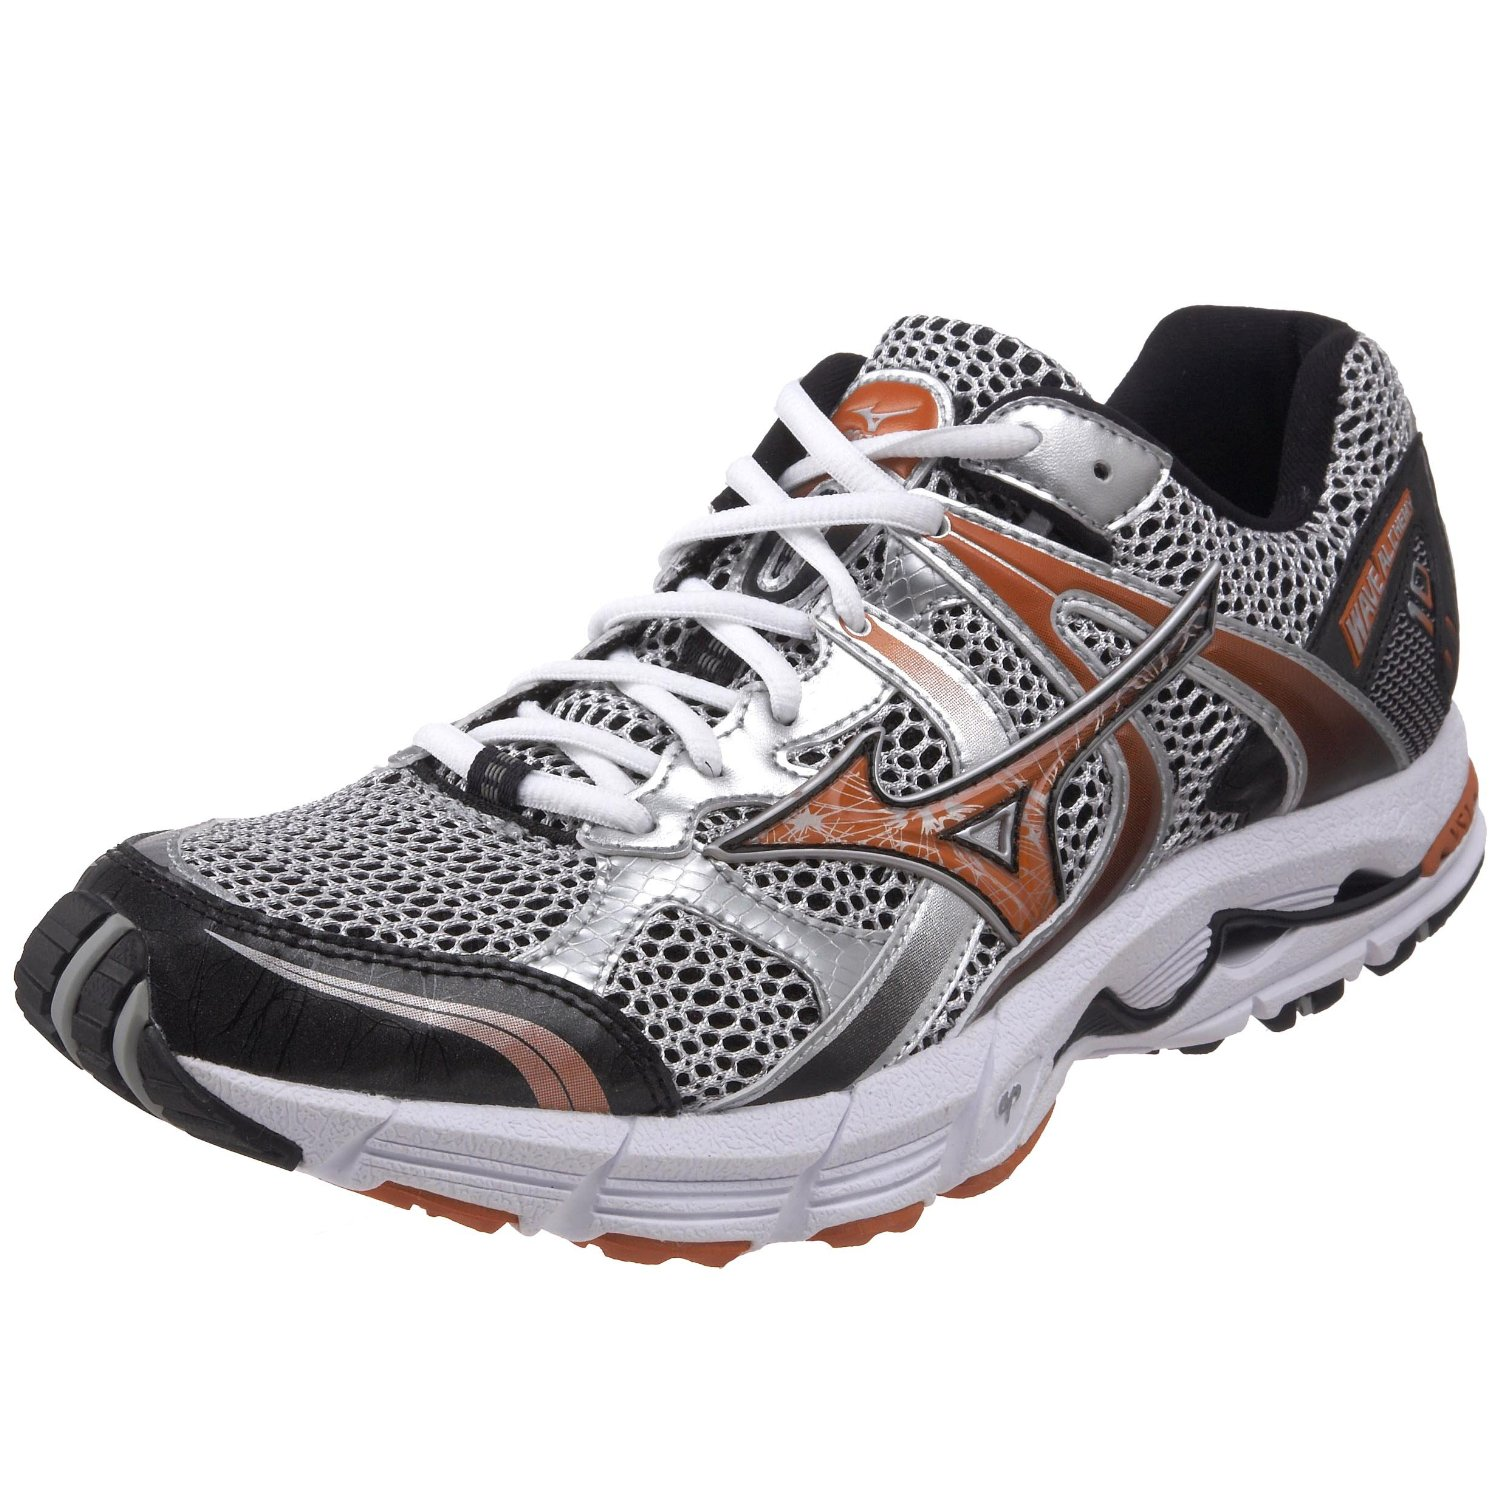 Best Mizuno Shoes For Flat Feet